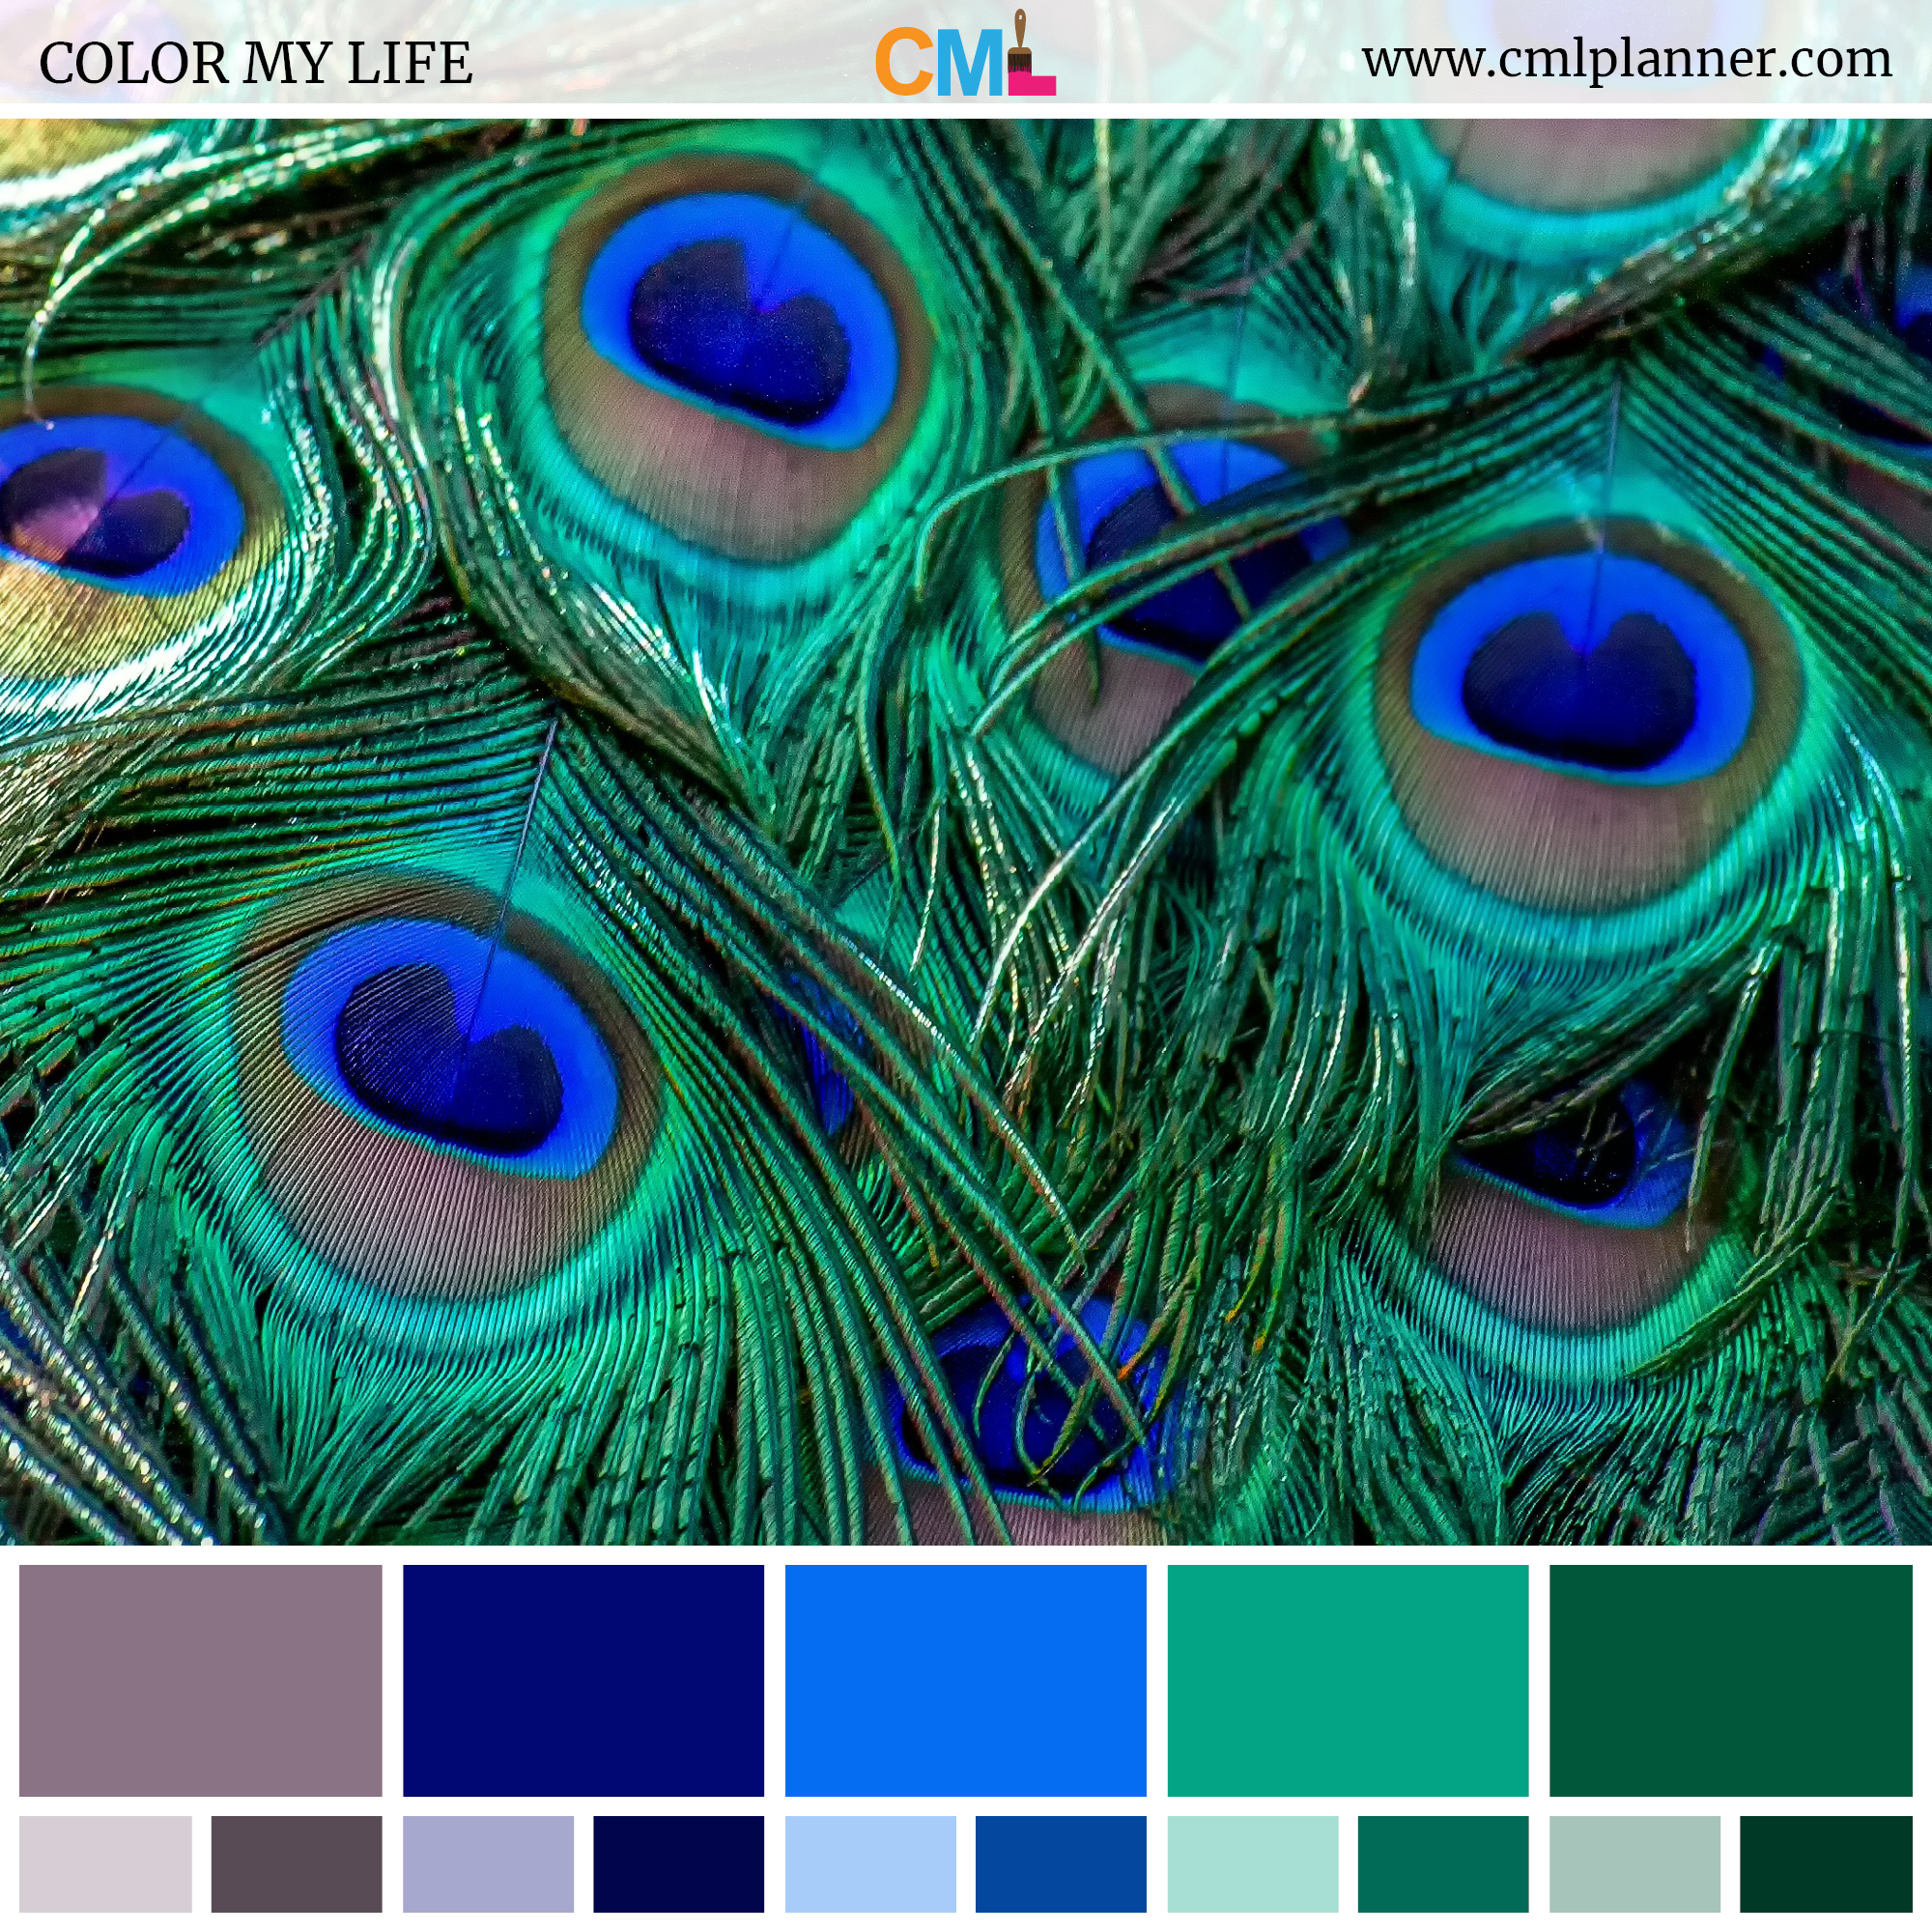 Color Palette Color Inspiration from